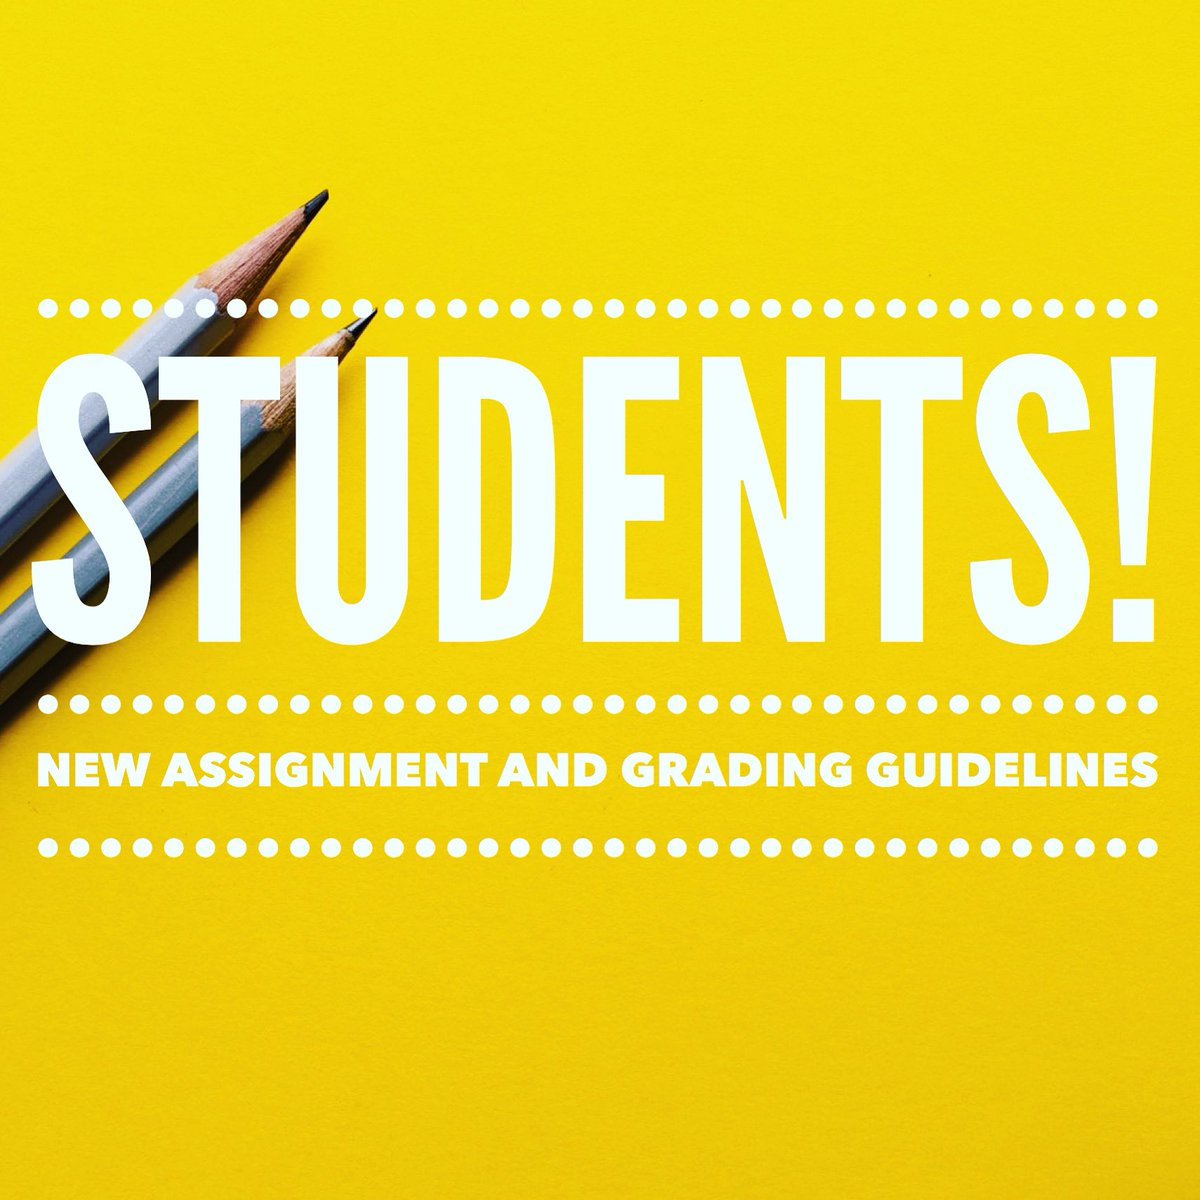 Scroll down to read new @FortWorthISD assignment and grading guidelines! ⬇️⬇️⬇️